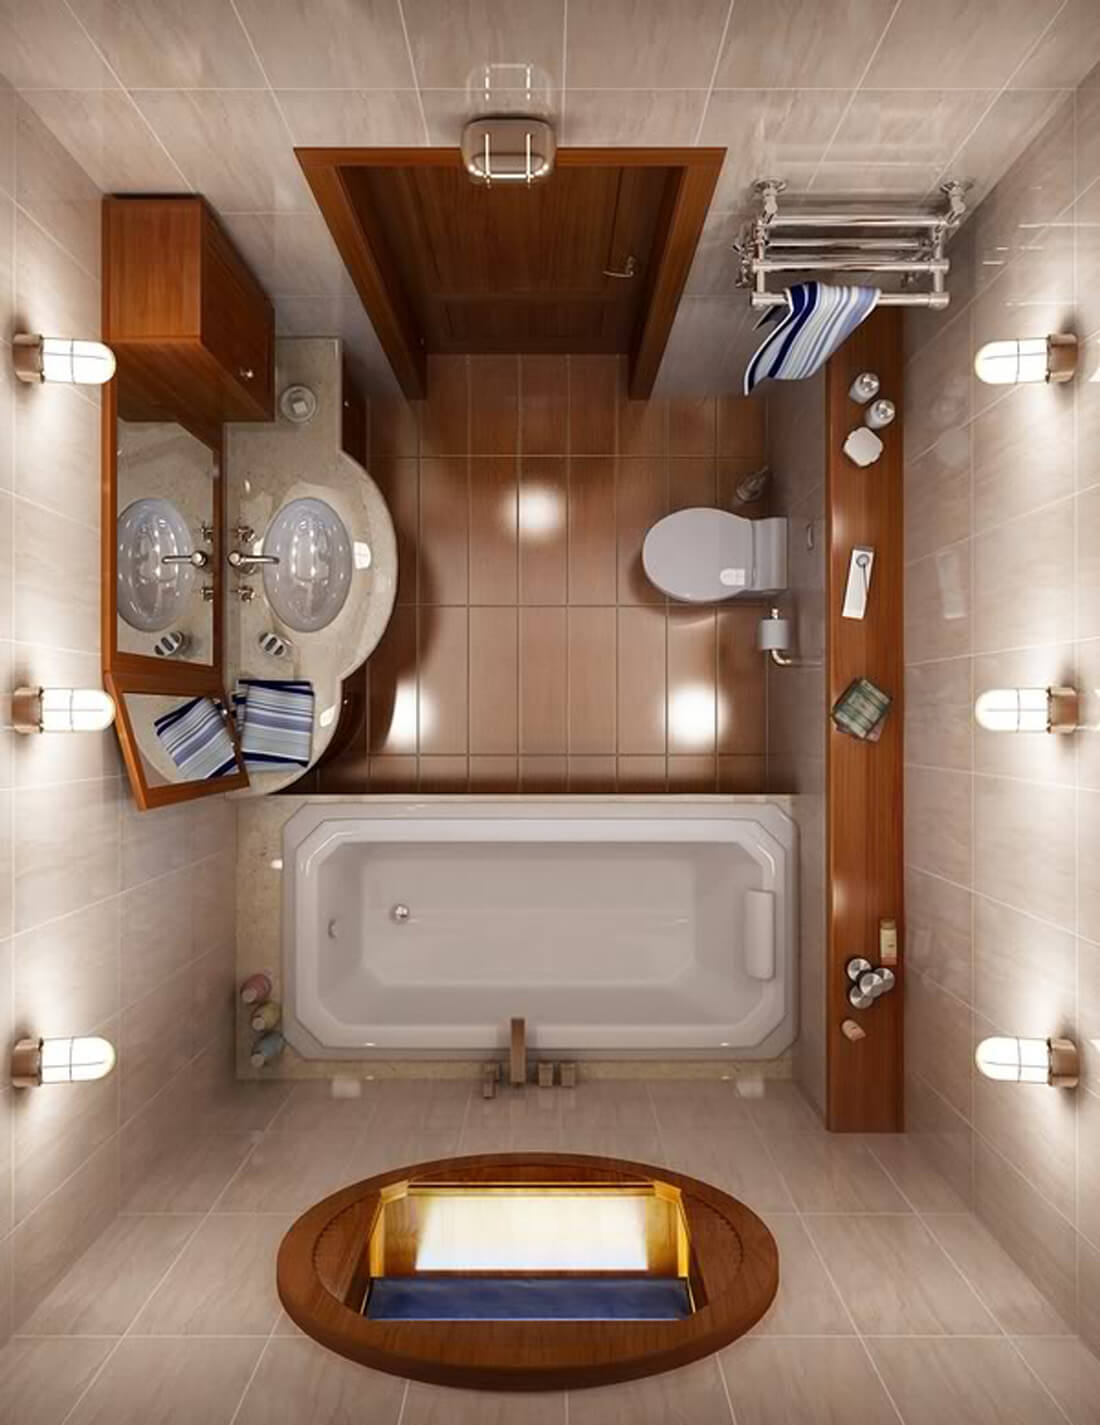 Bathroom Remodel 5 X 10 small bathroom design plans. small bathroom design plans design